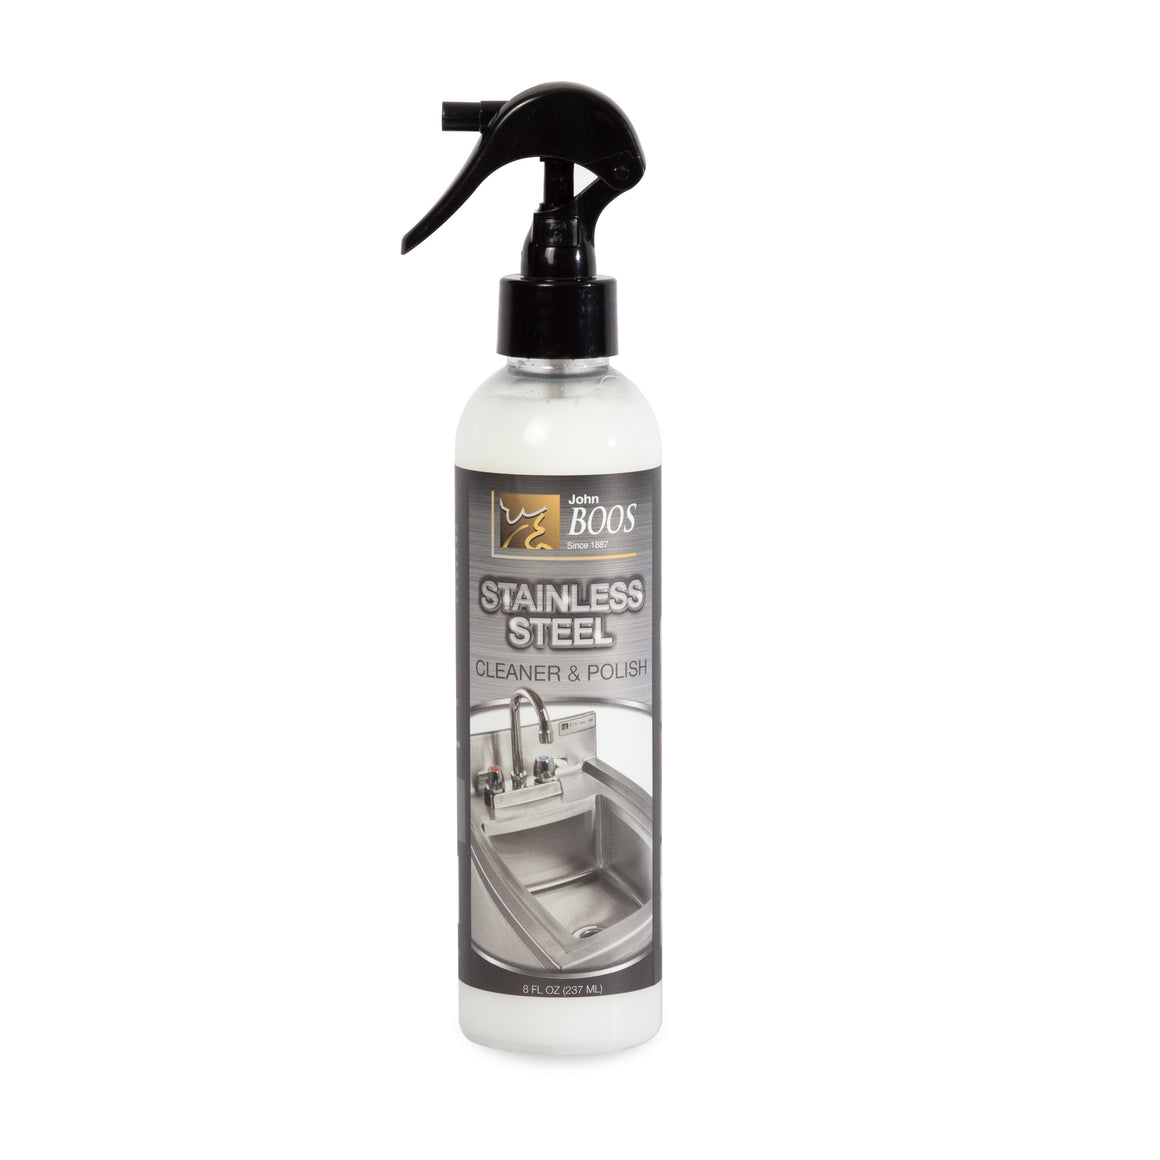 Stainless Steel Cleaner & Polish 8 oz. - New Formula!